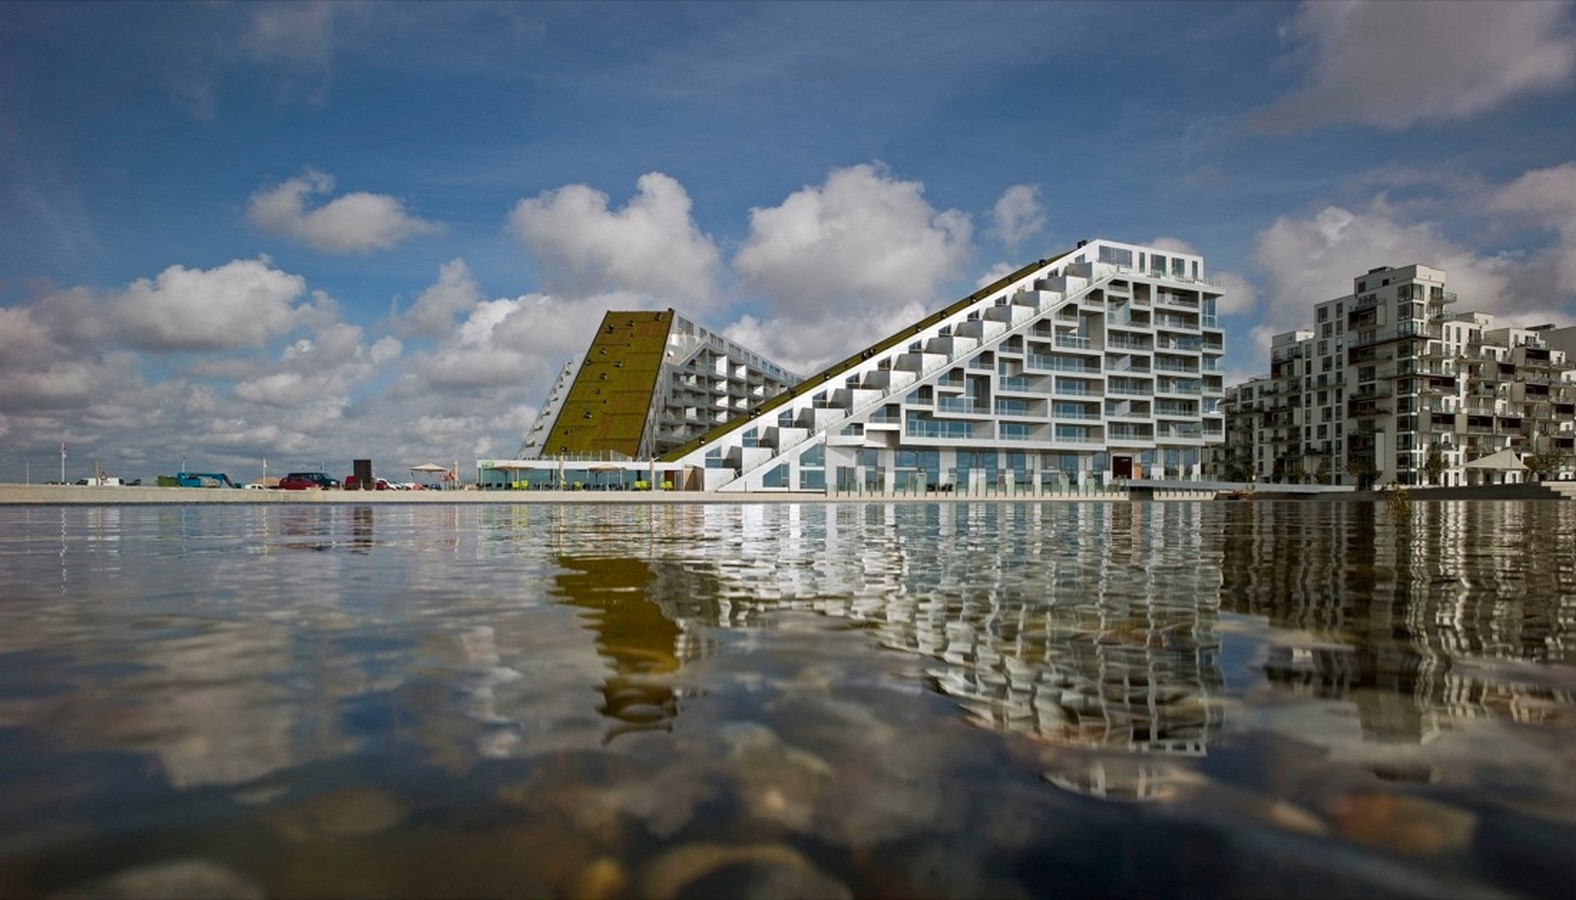 8 House by Bjarke Ingels: The bow-shaped building - Sheet1